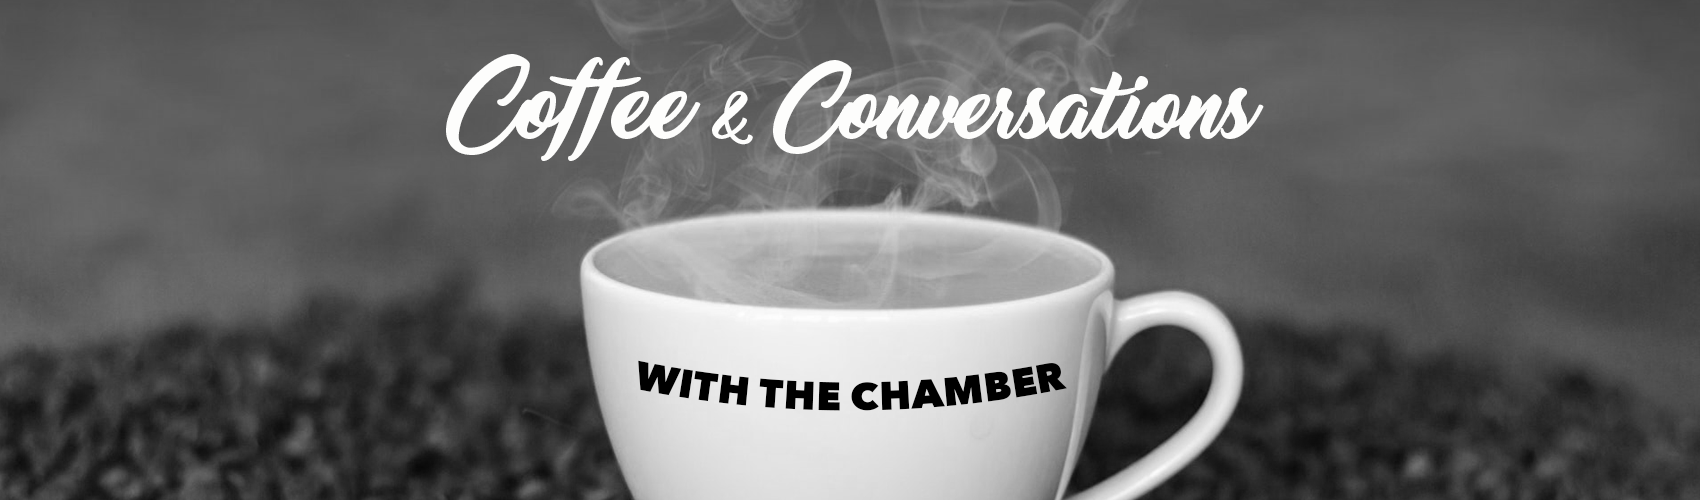 Coffee-&-Conversation-Teaser.png